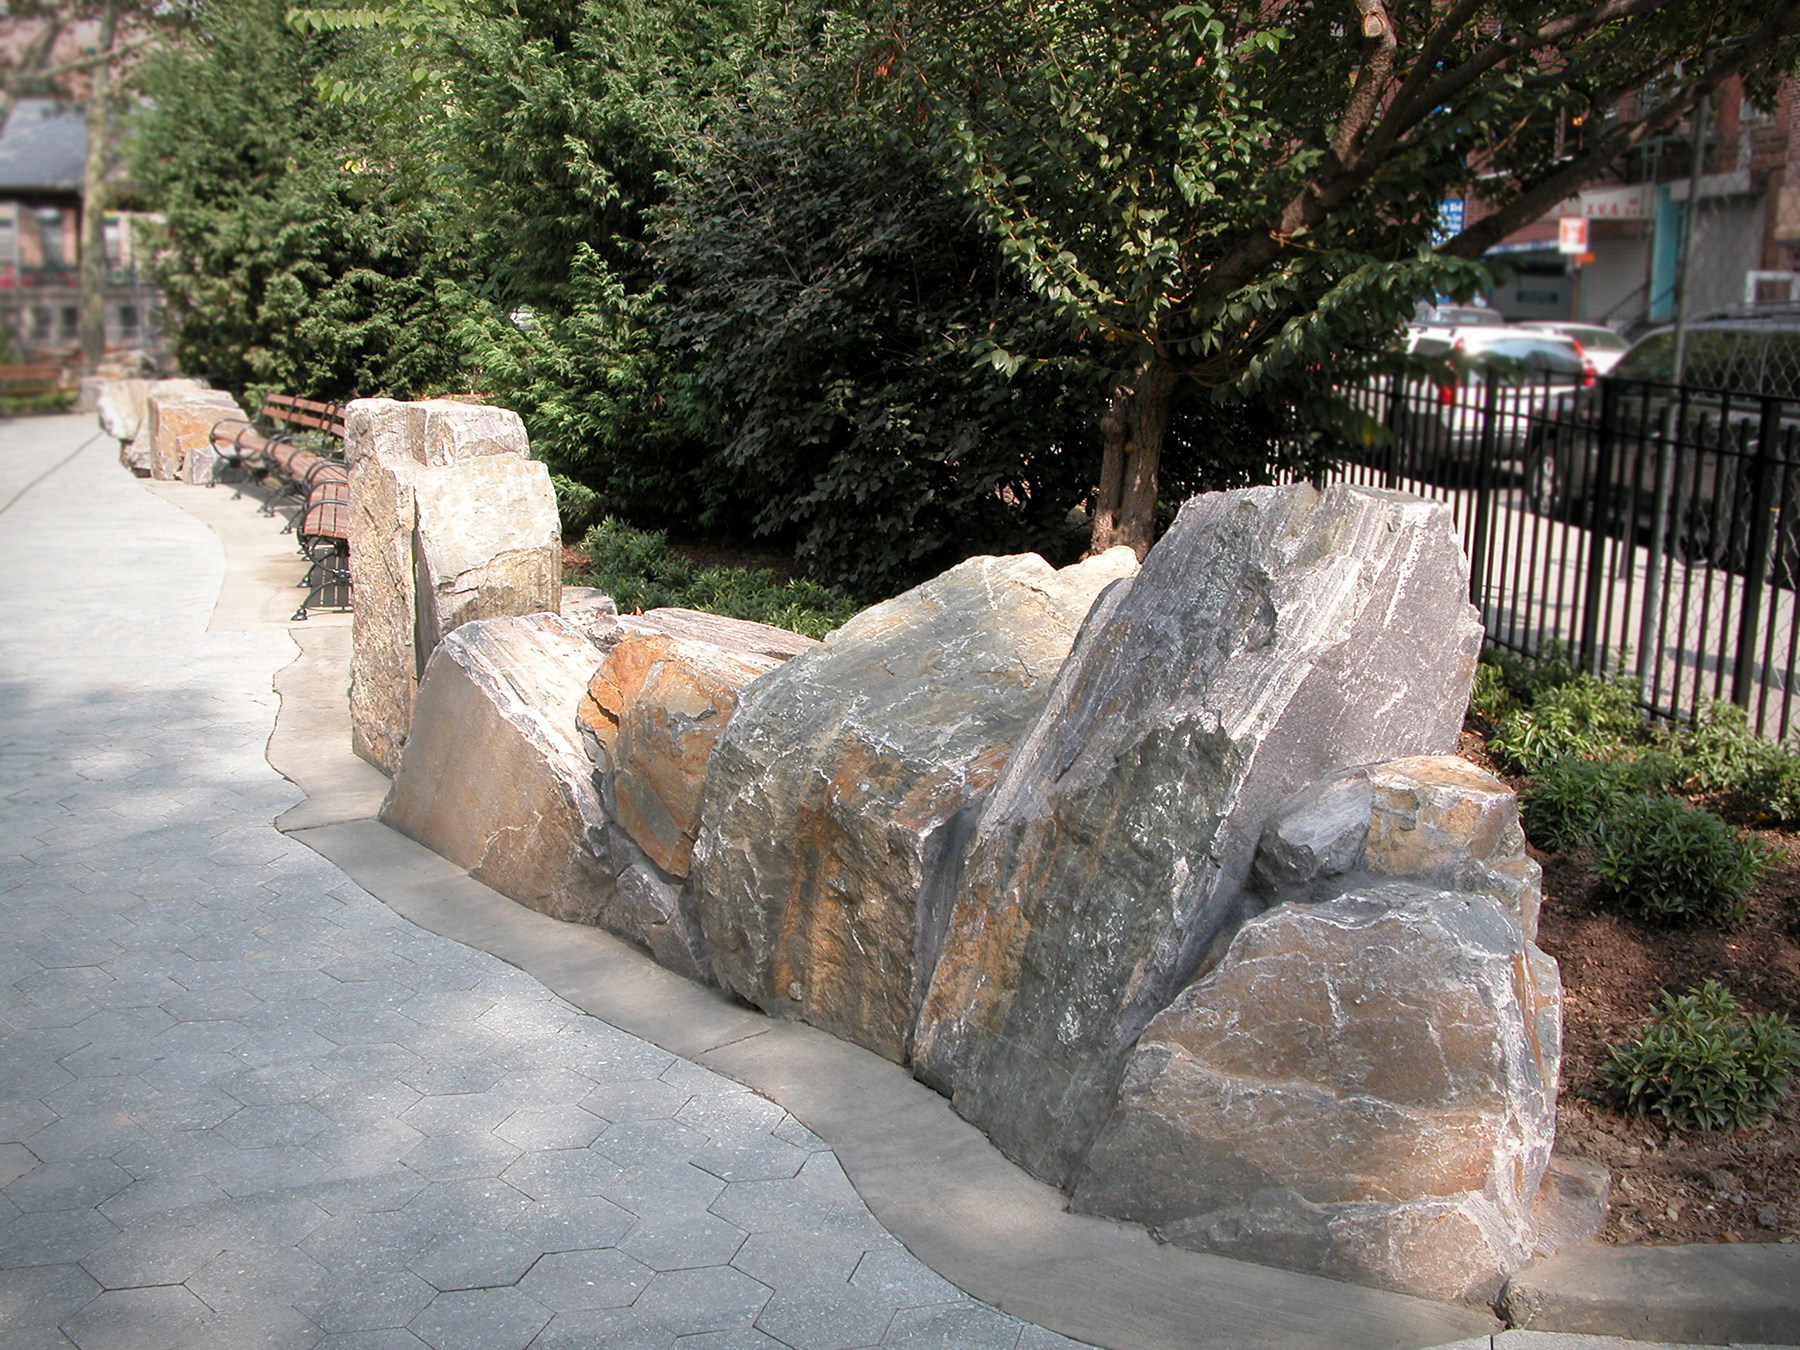 Landscaping stone next to walkway